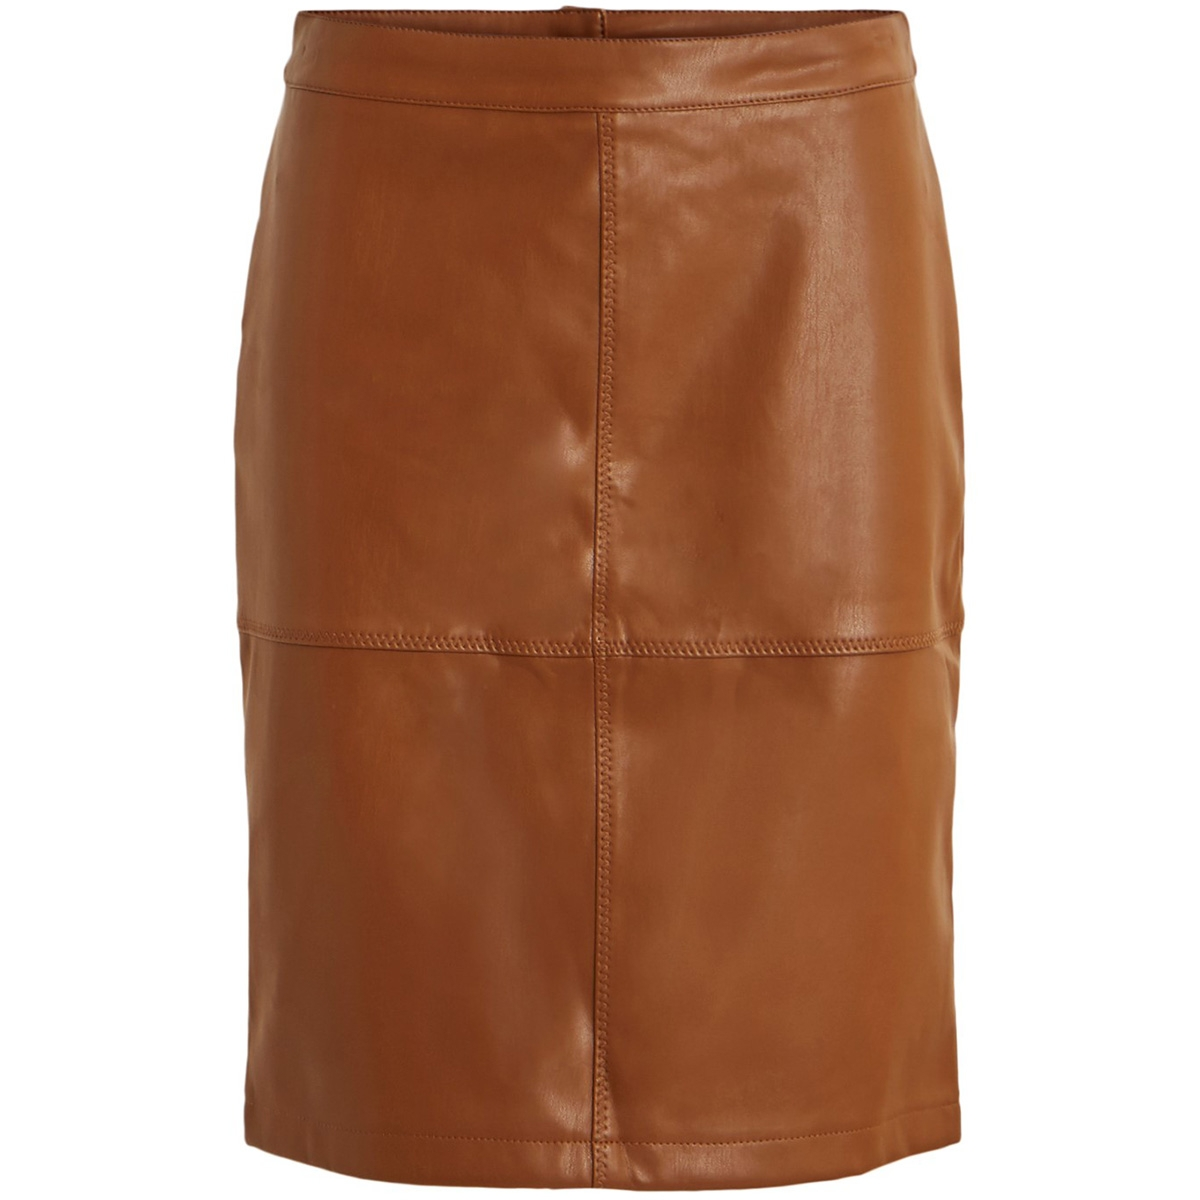 vipen new skirt-fav 14043497 vila rok oak brown